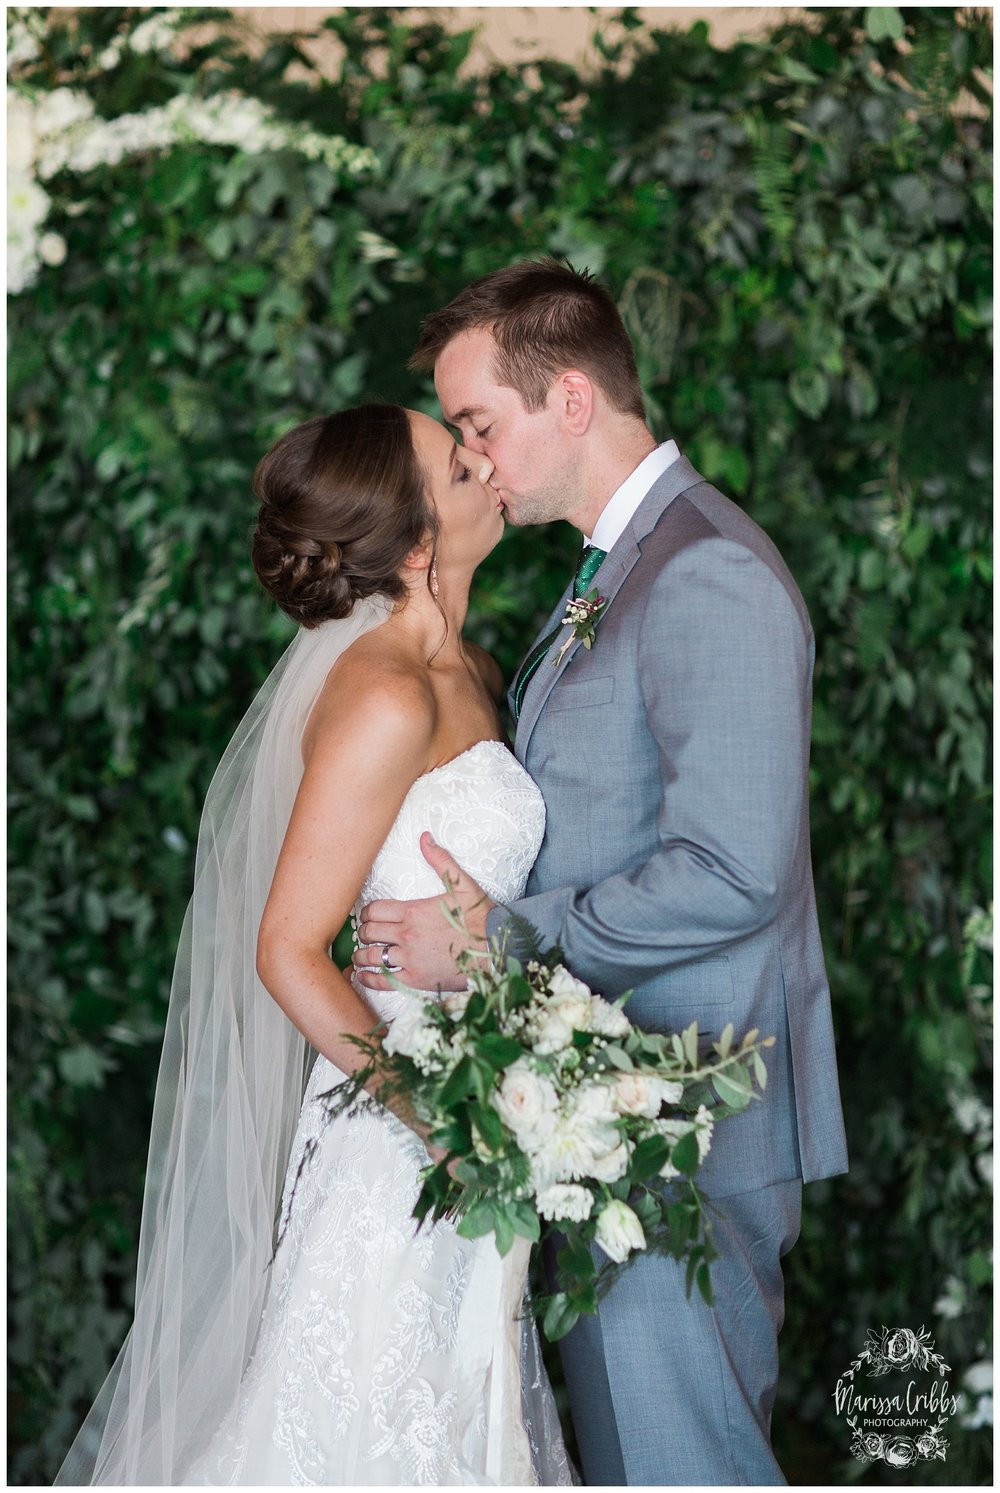 FEASTS OF FANCY KC WEDDING | THE HOBBS WEDDING KANSAS CITY | MARISSA CRIBBS PHOTOGRAPHY_2216.jpg